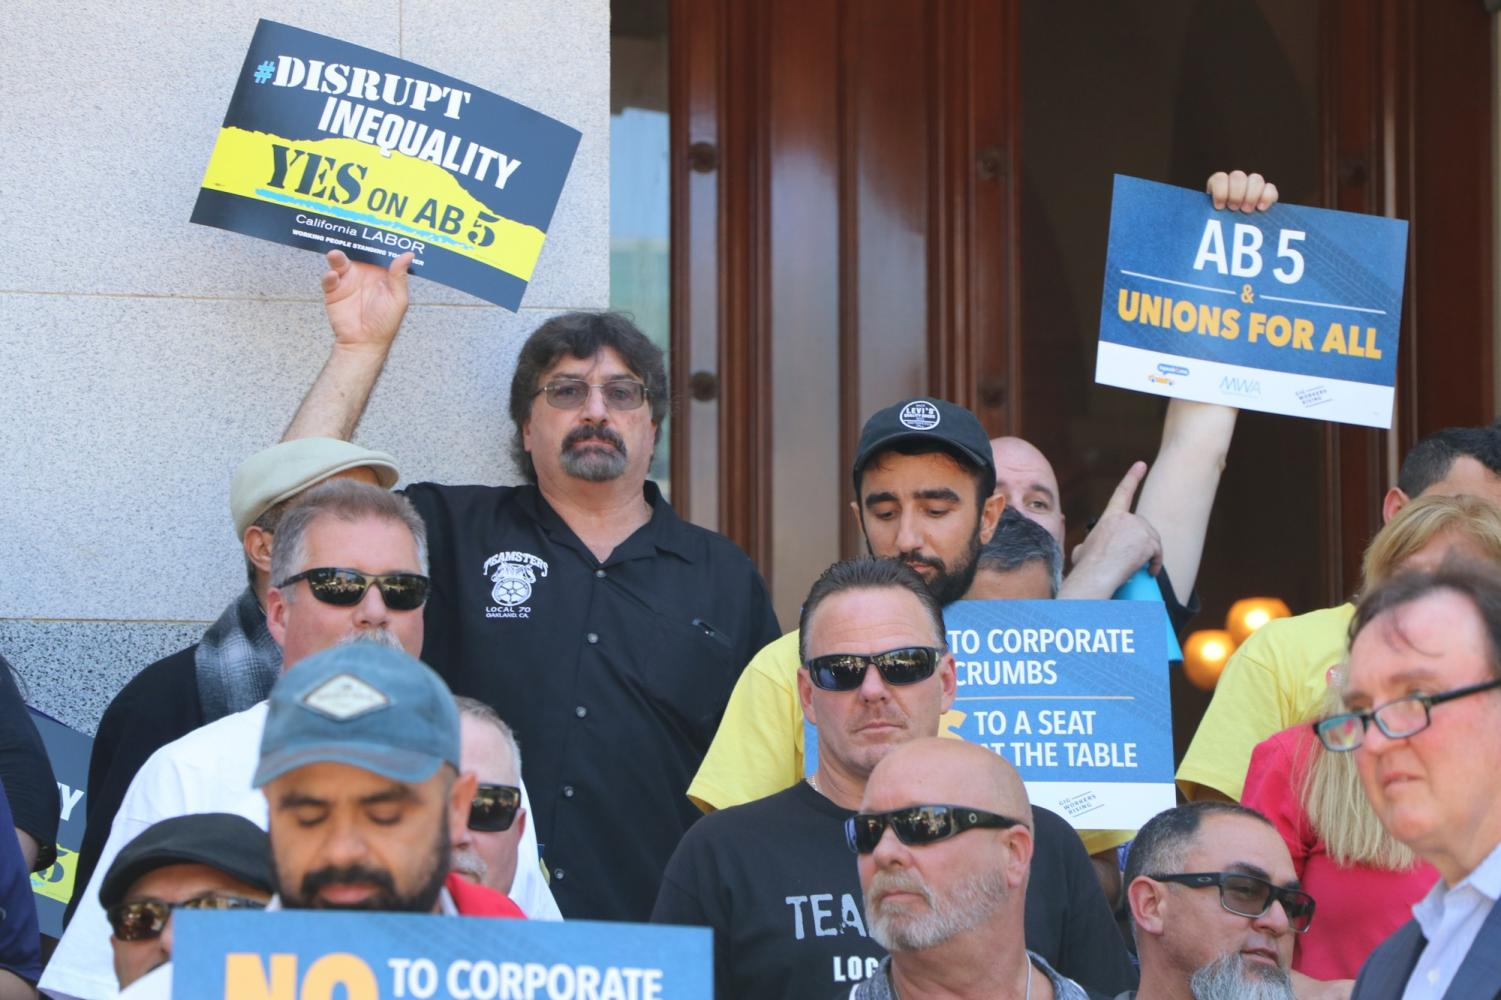 Independent contractors protesting in support of AB5, that if passed would give them employee status. Photo credit: Elaine Sanders